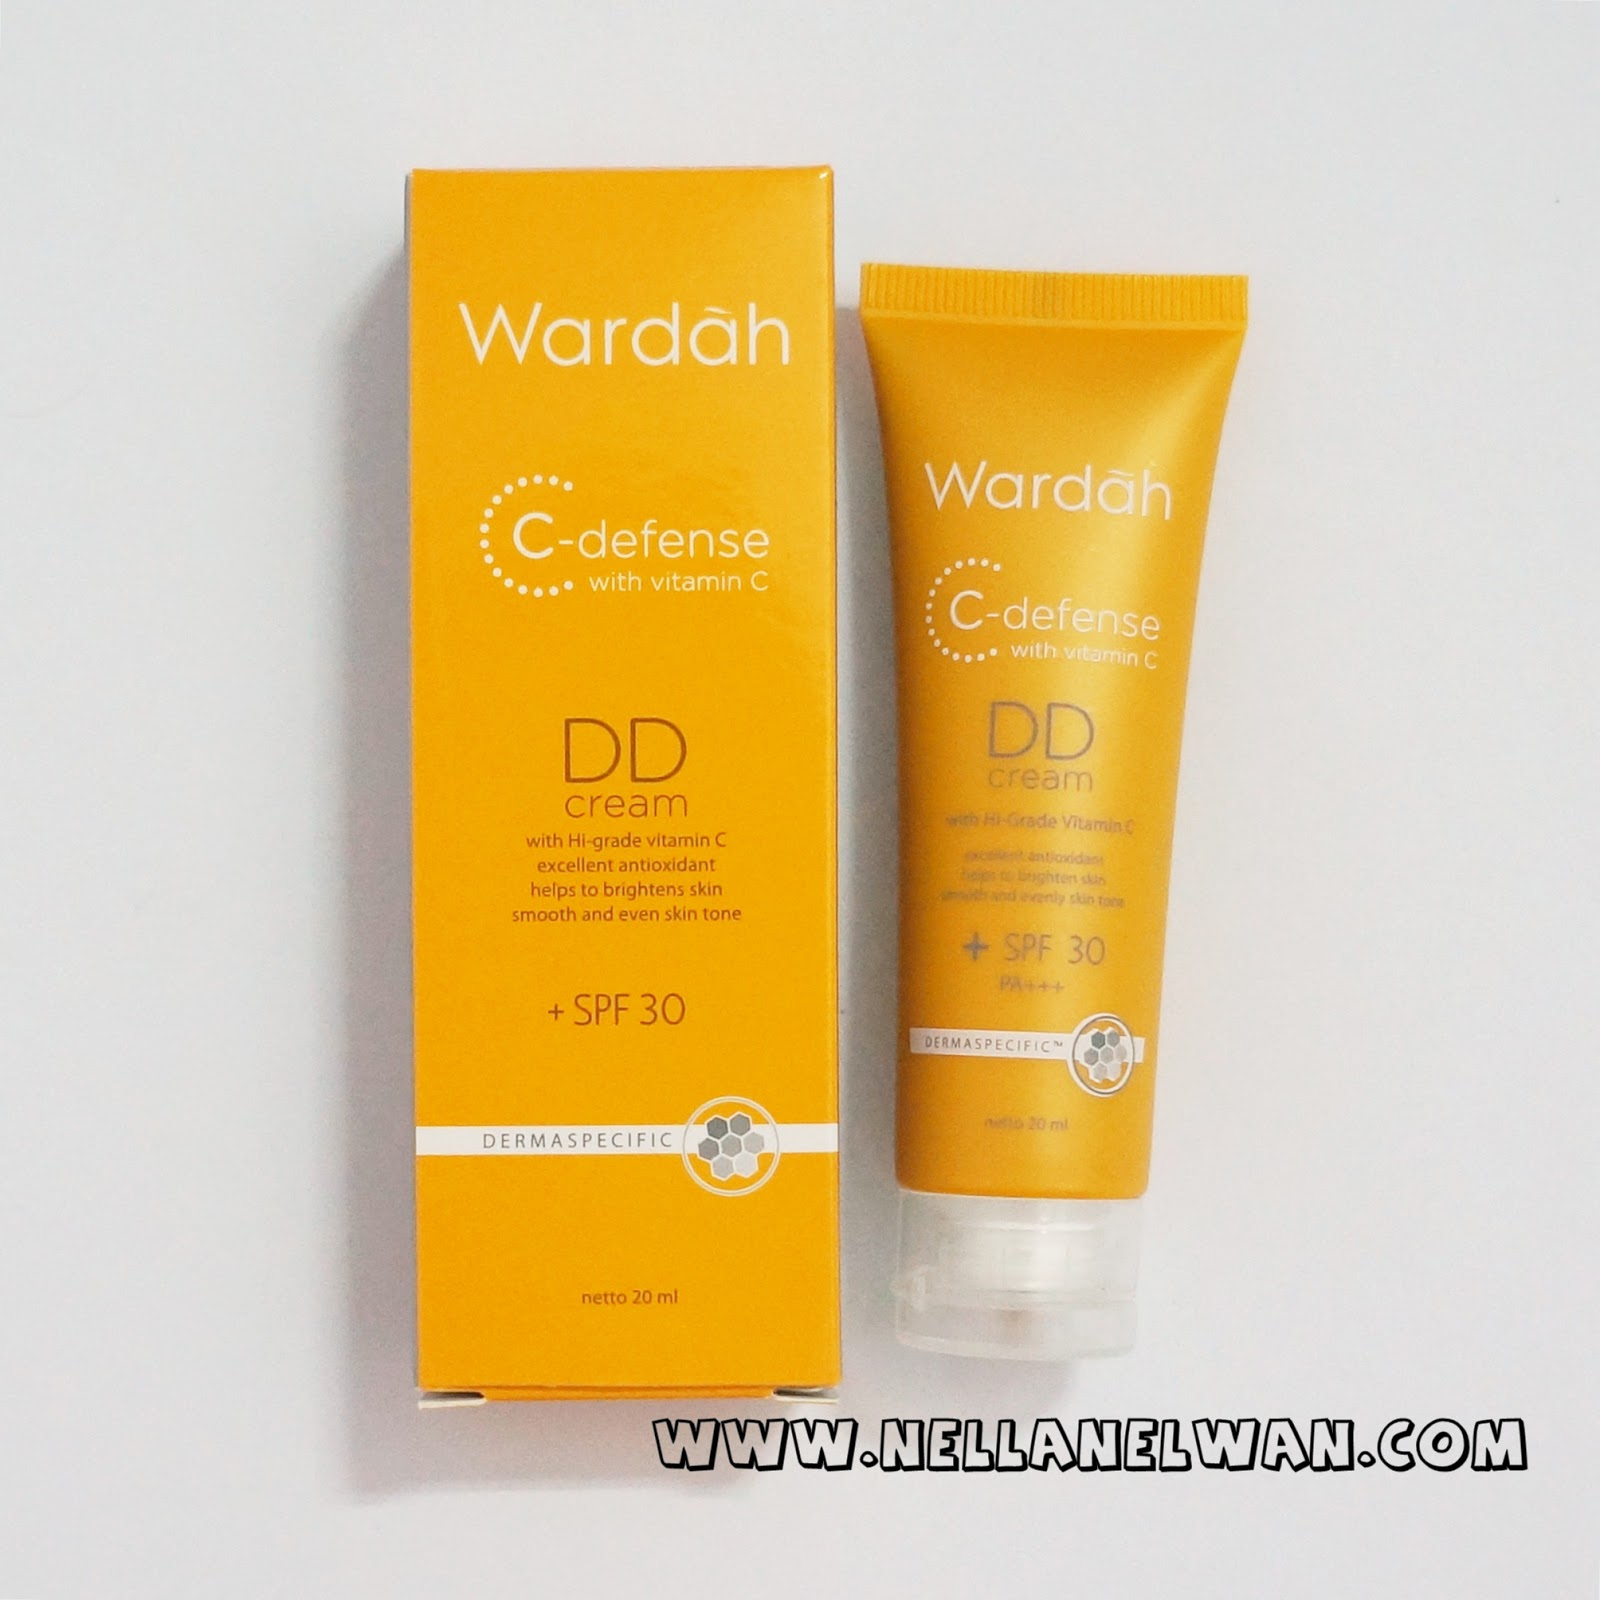 wardah c defense dd cream review nellanelwan